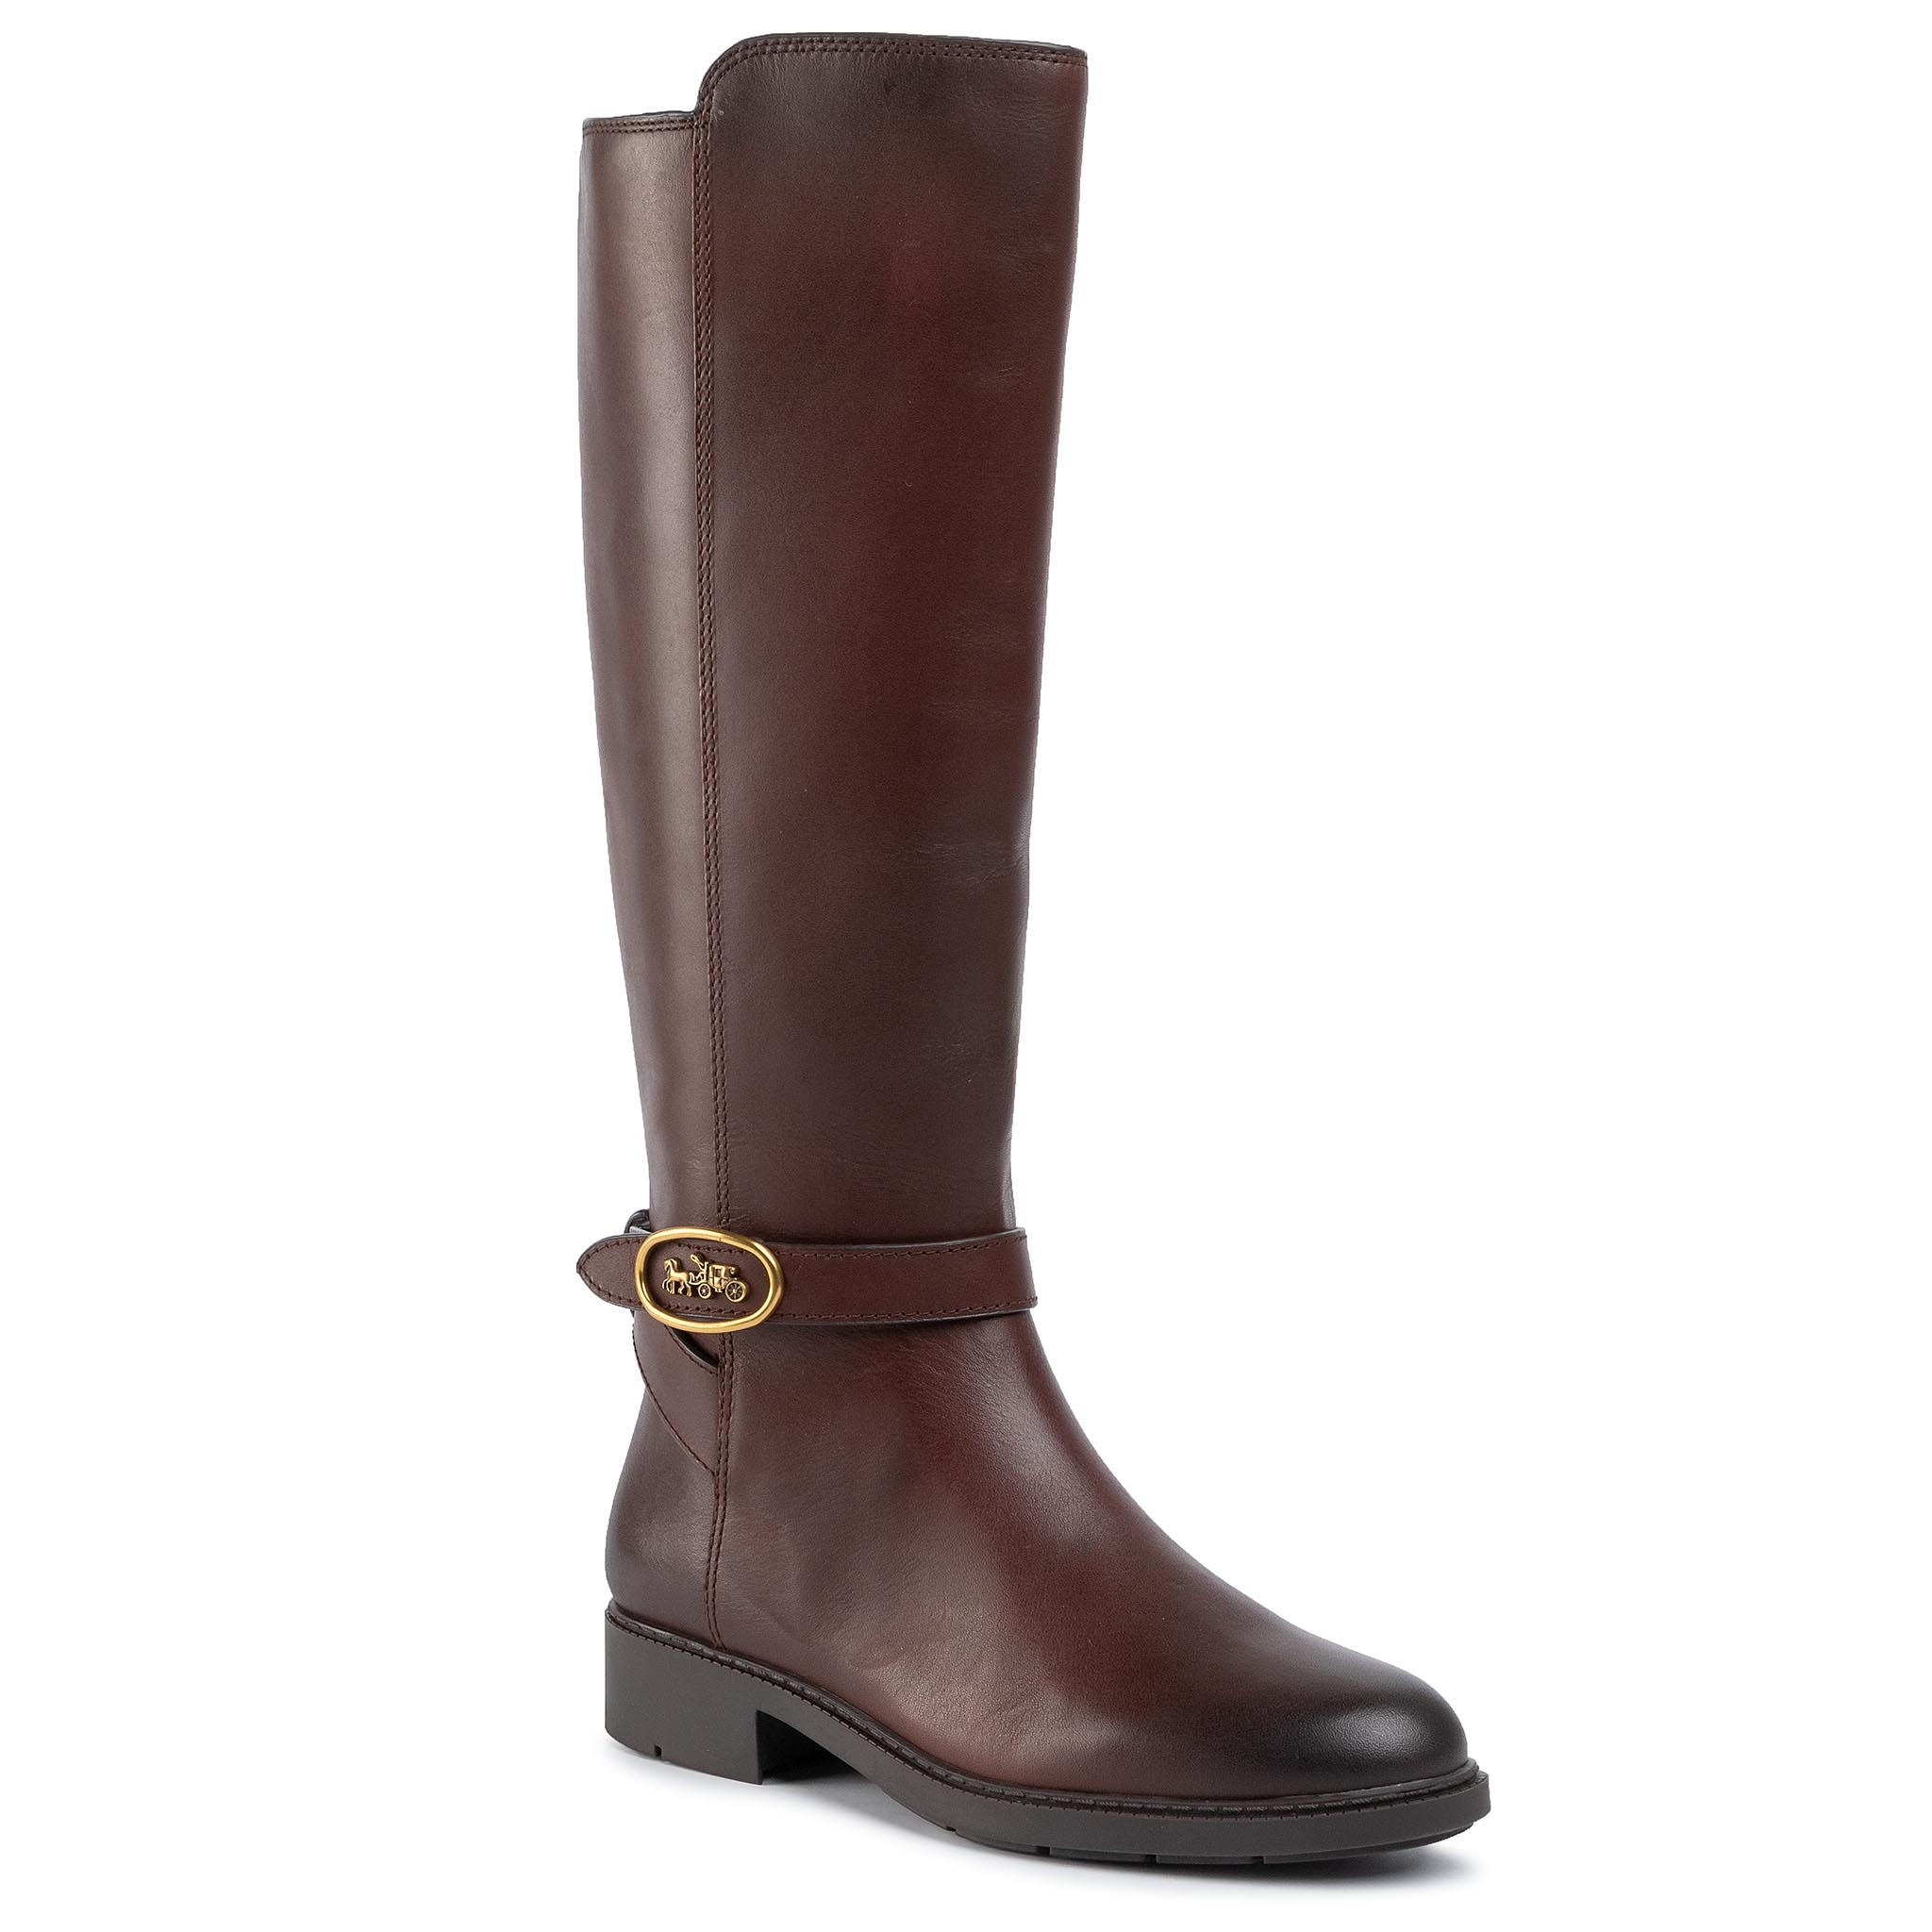 Cizme lungi riding COACH - Ruby Hc Boot Ltr G4393 233148 Walnut